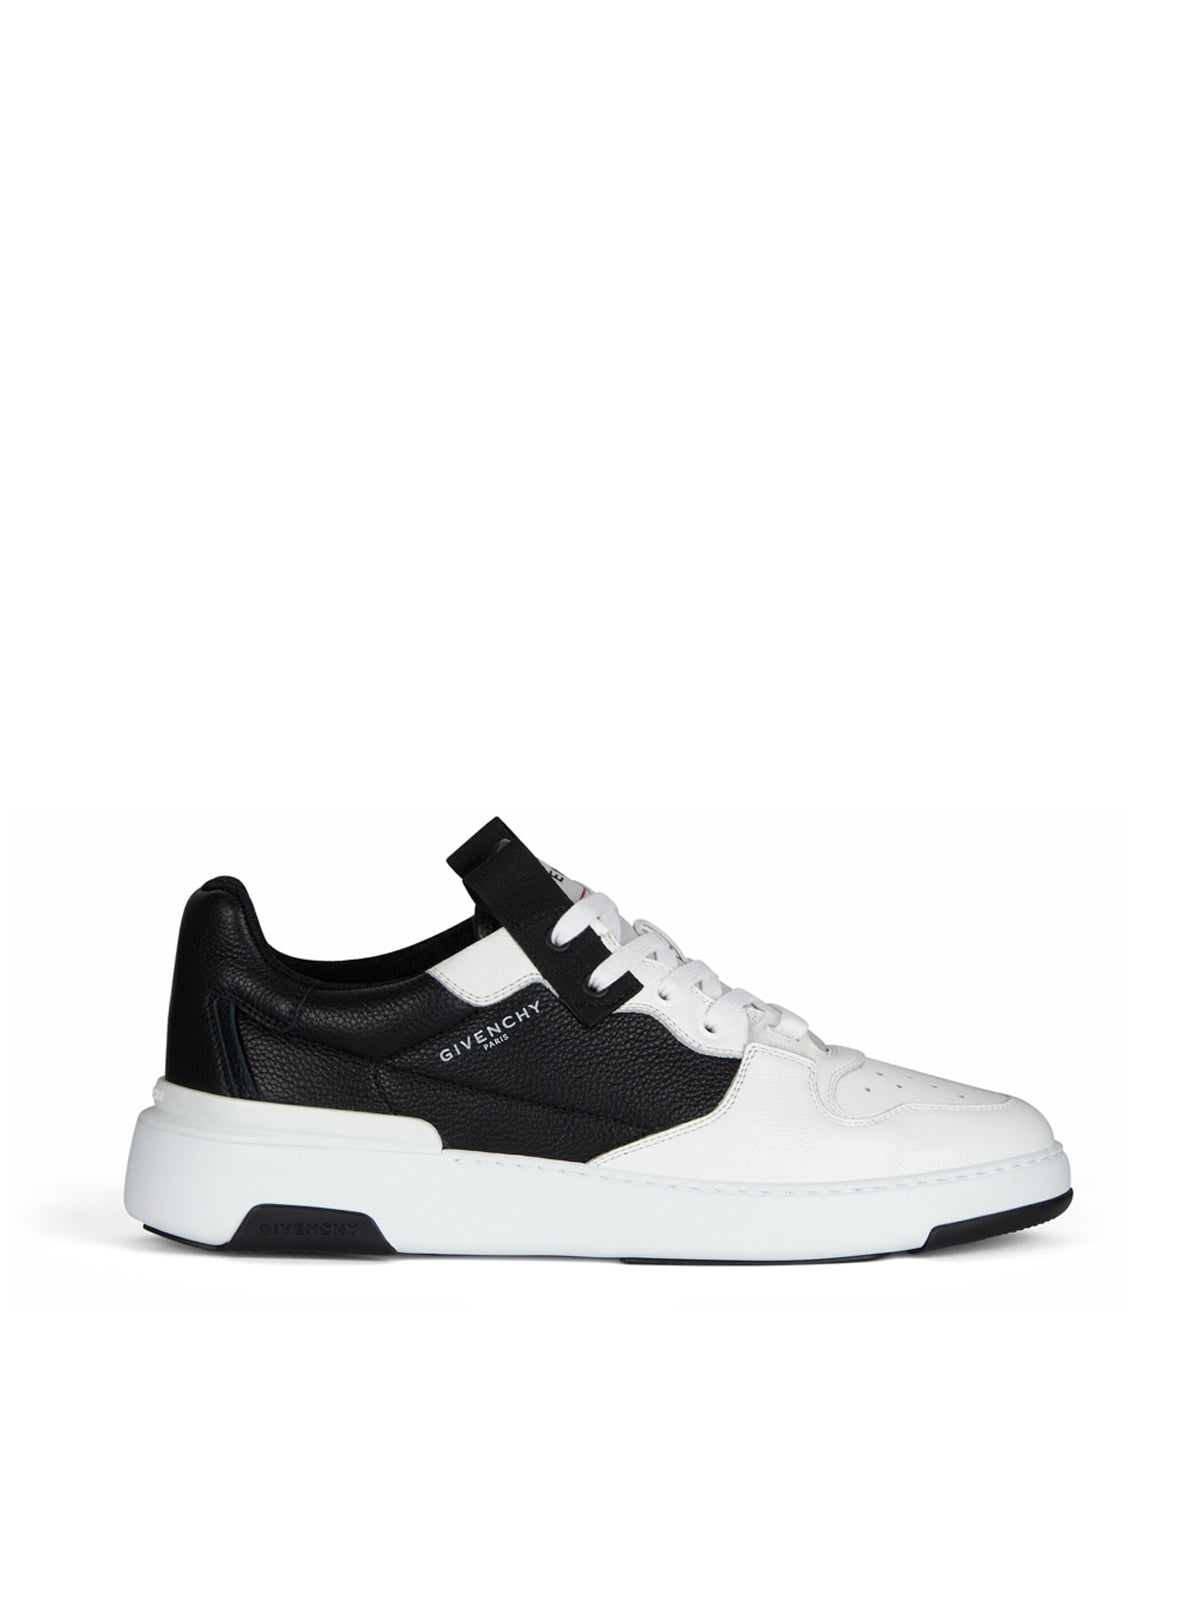 Givenchy ASYMMETRIC SNEAKERS WING